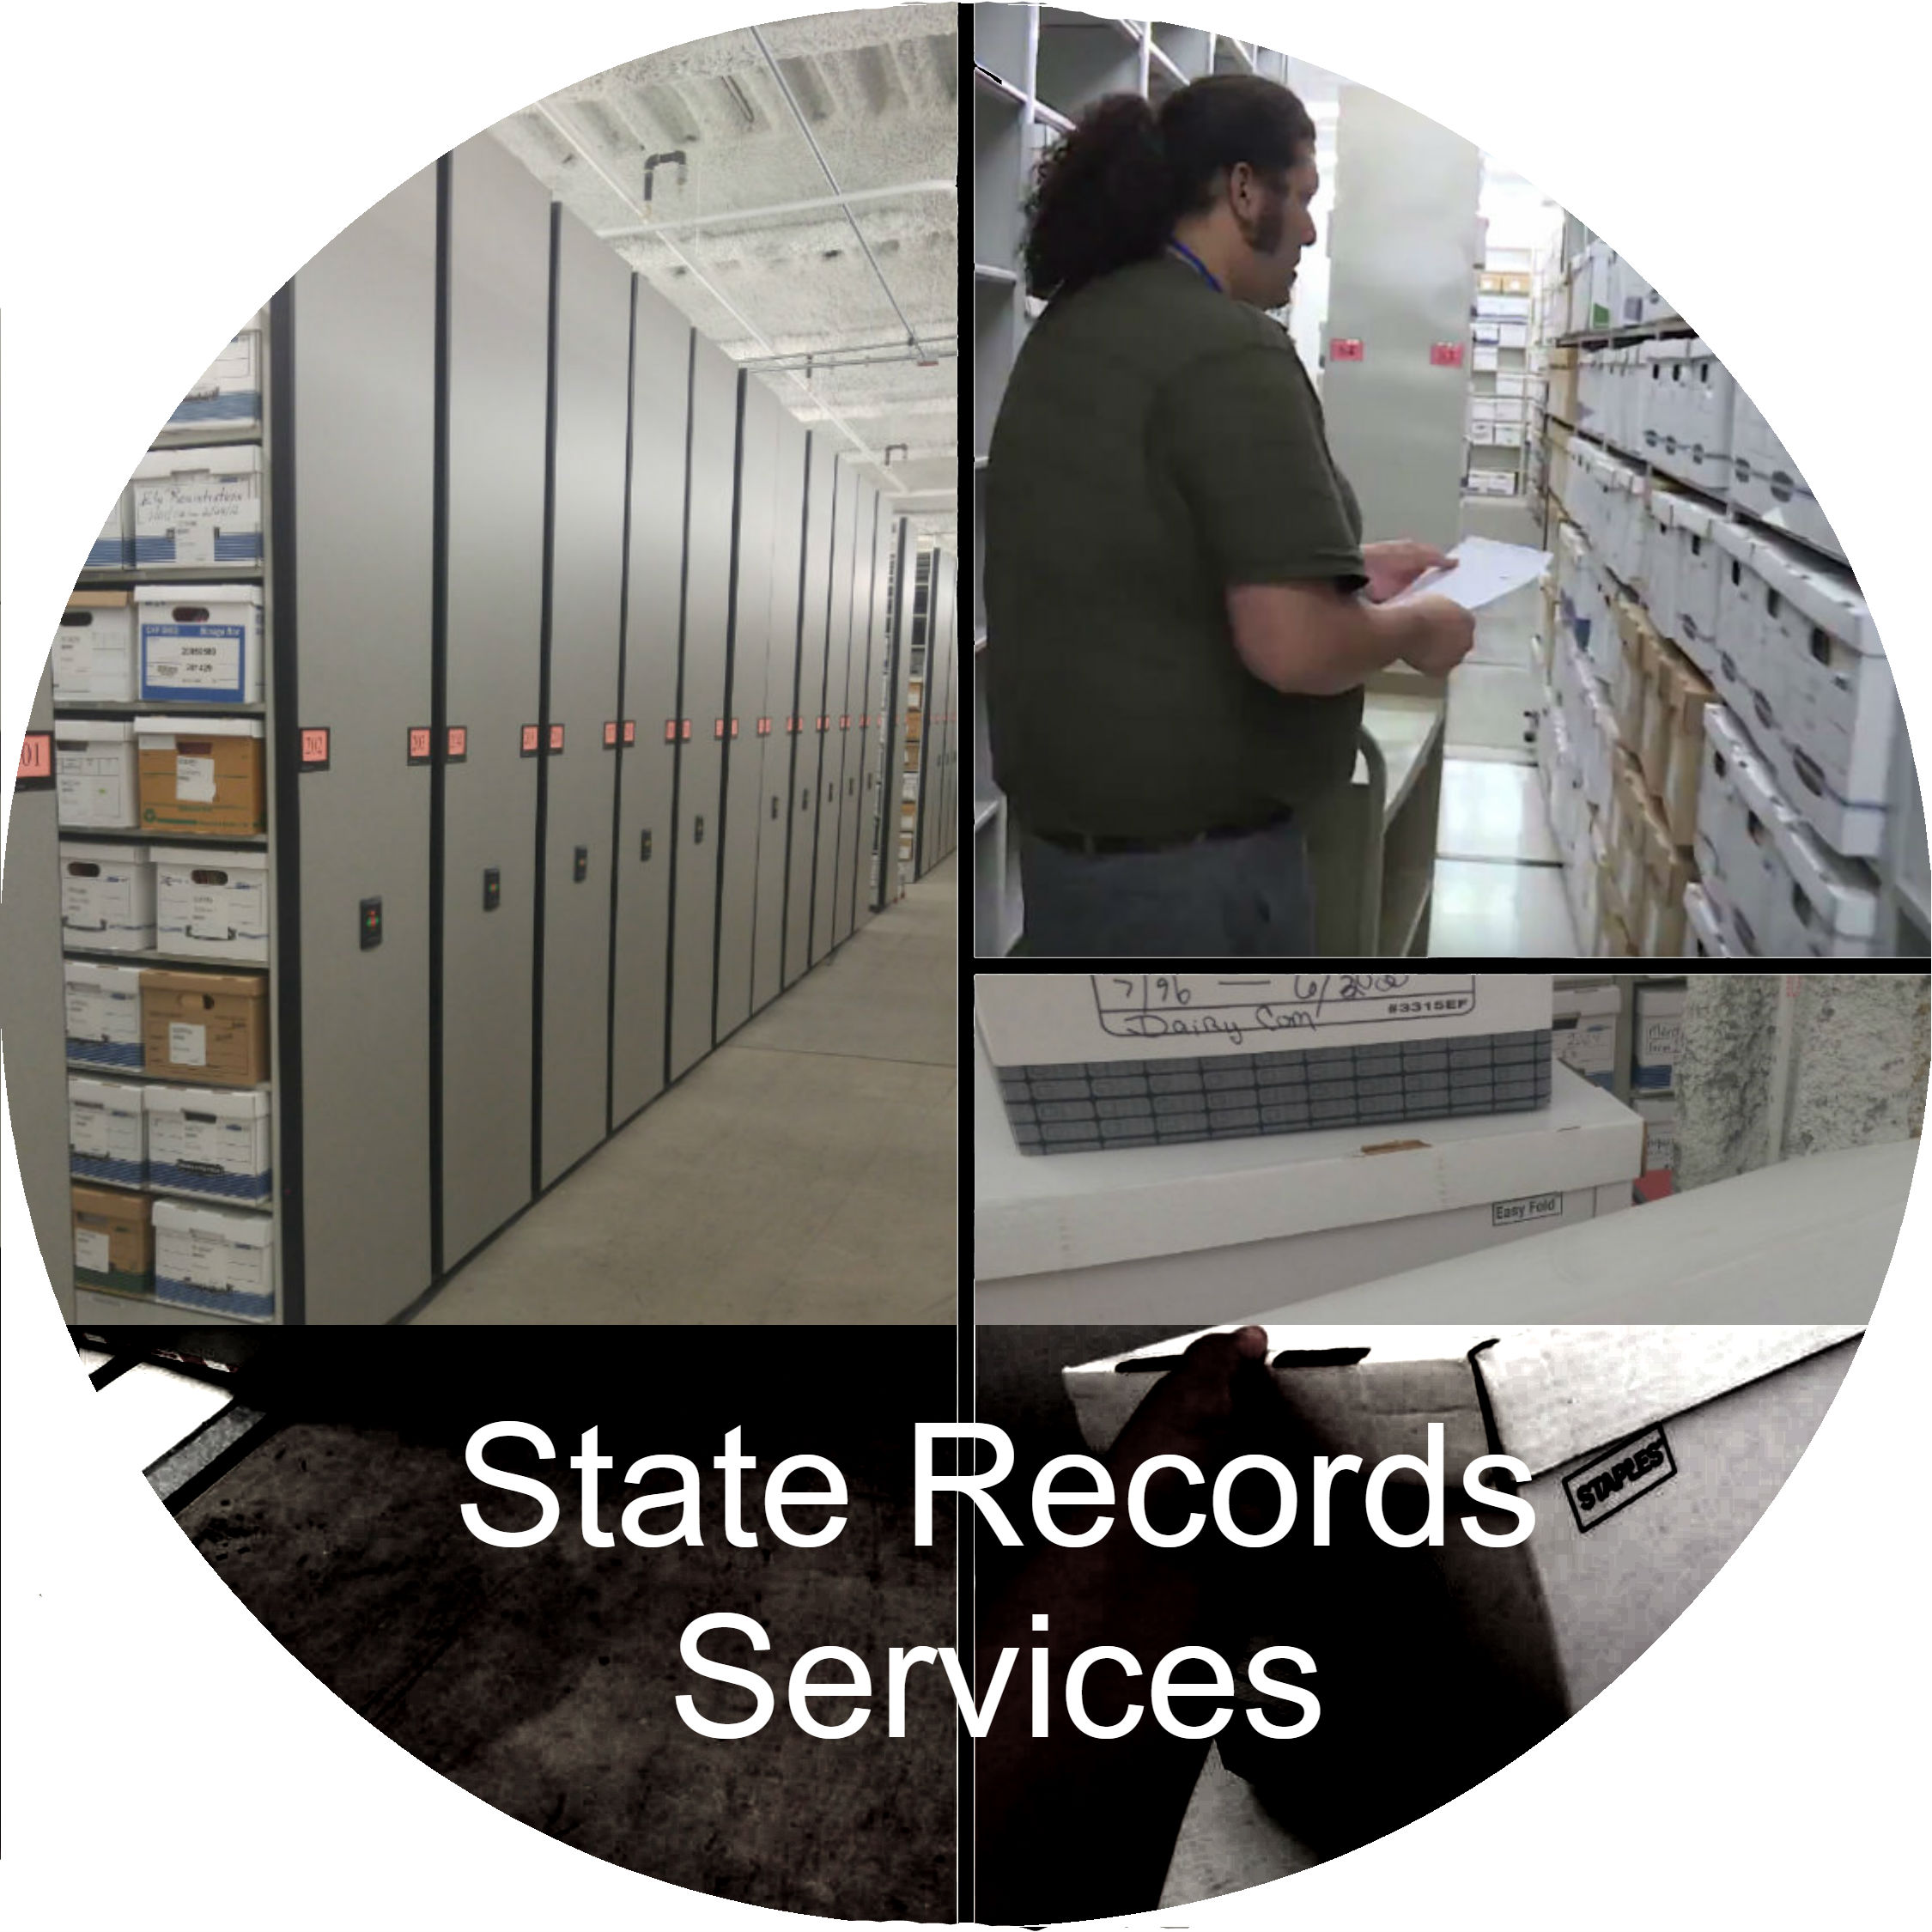 A button link to the State Records Services